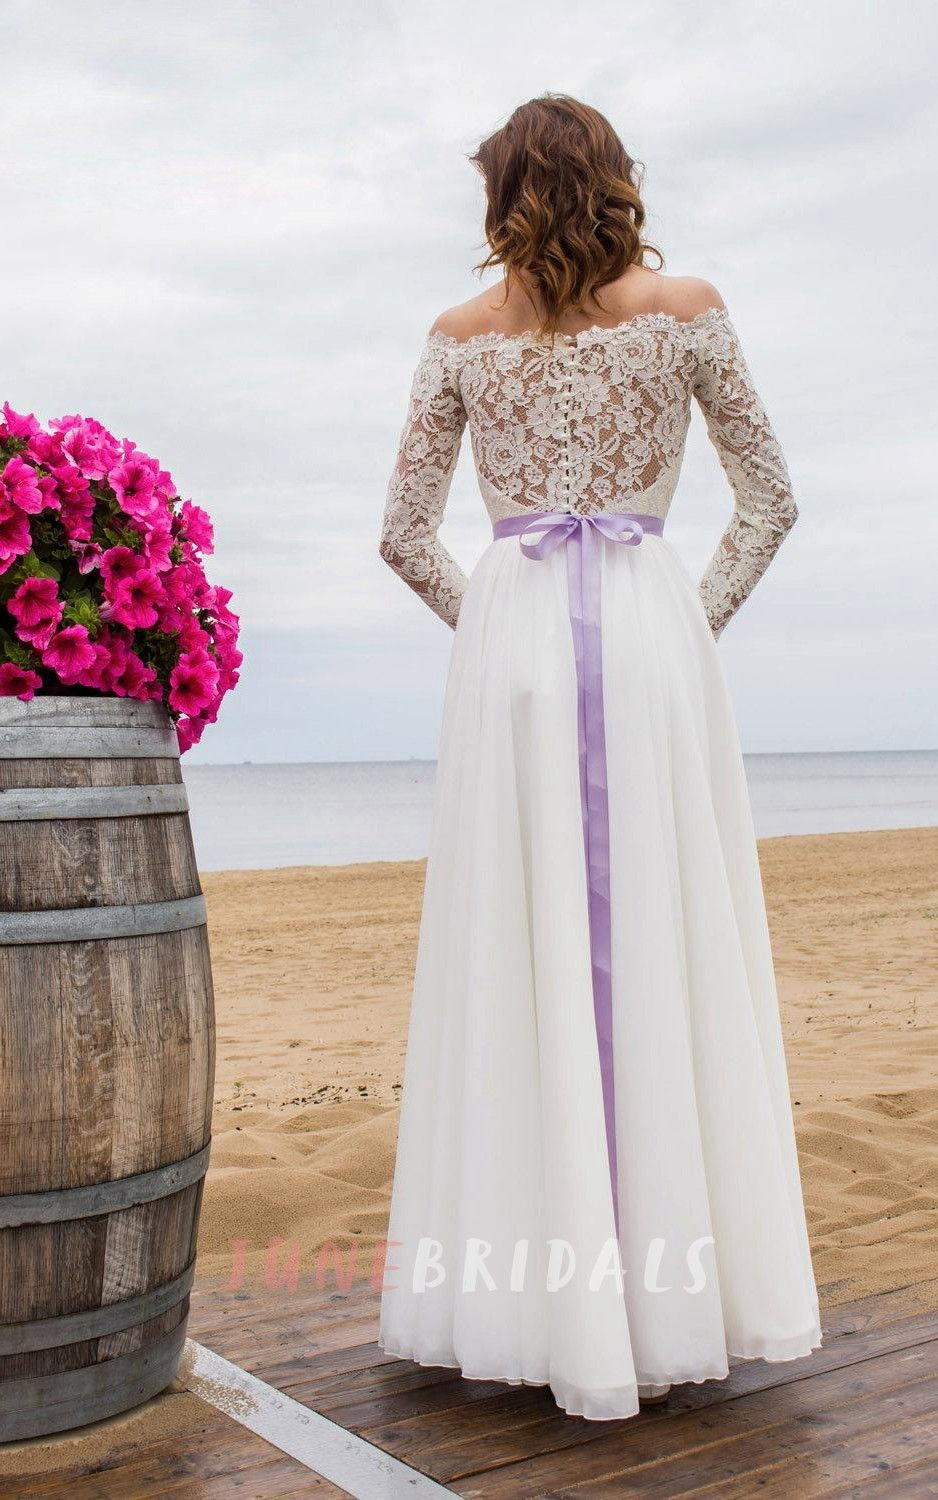 Offshoulder long sleeve closed sheer back wedding dress with